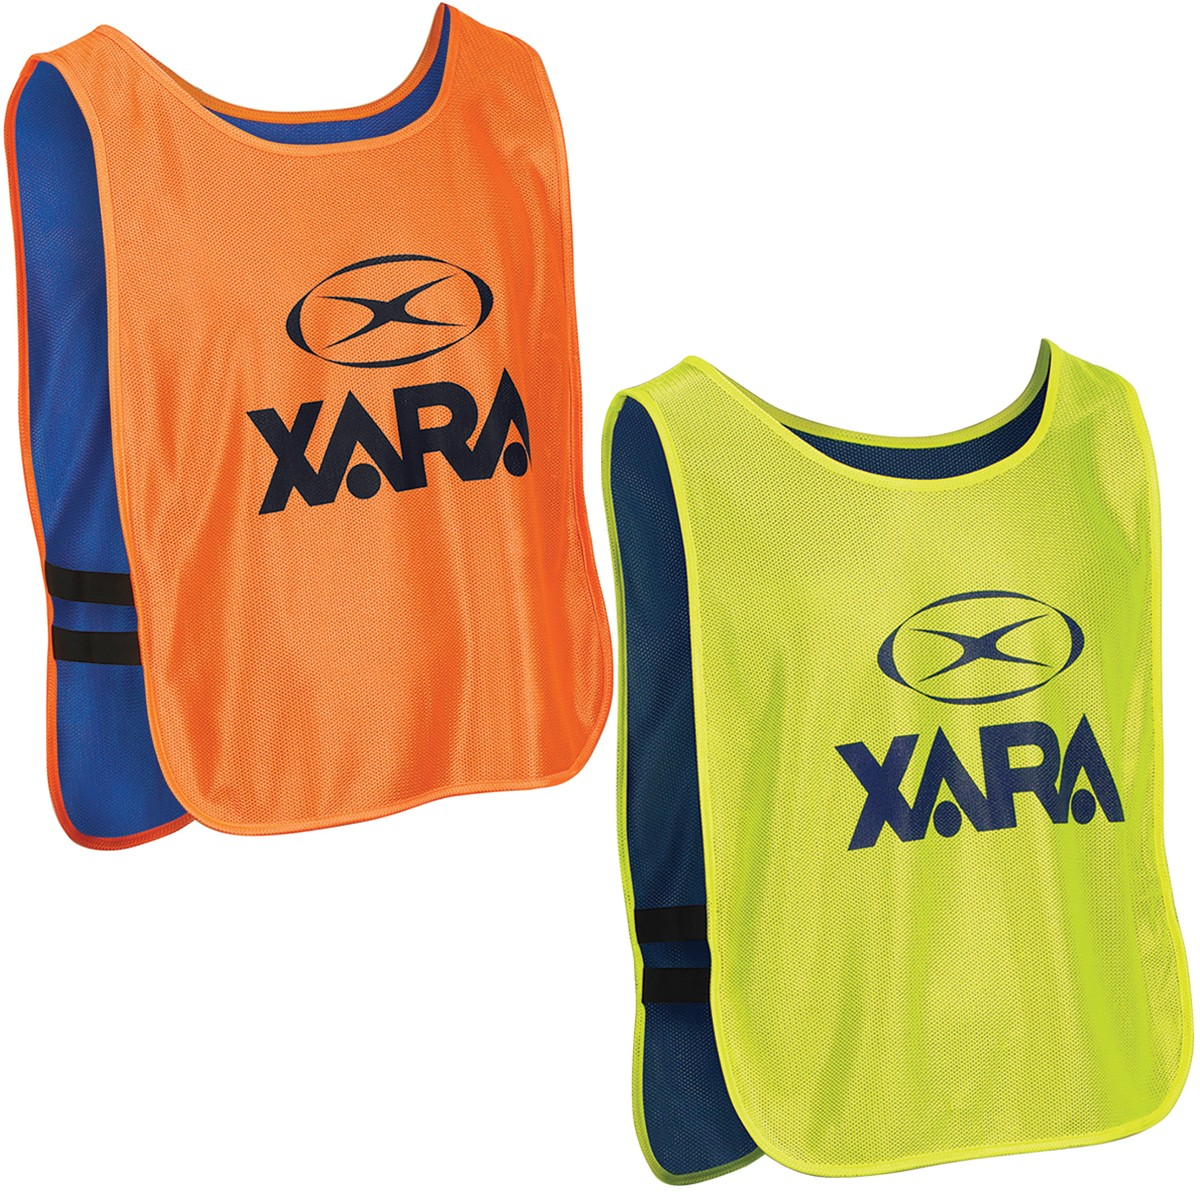 sport folding chairs chair stand test hd images xara reversible soccer training bib/pinnie, youth